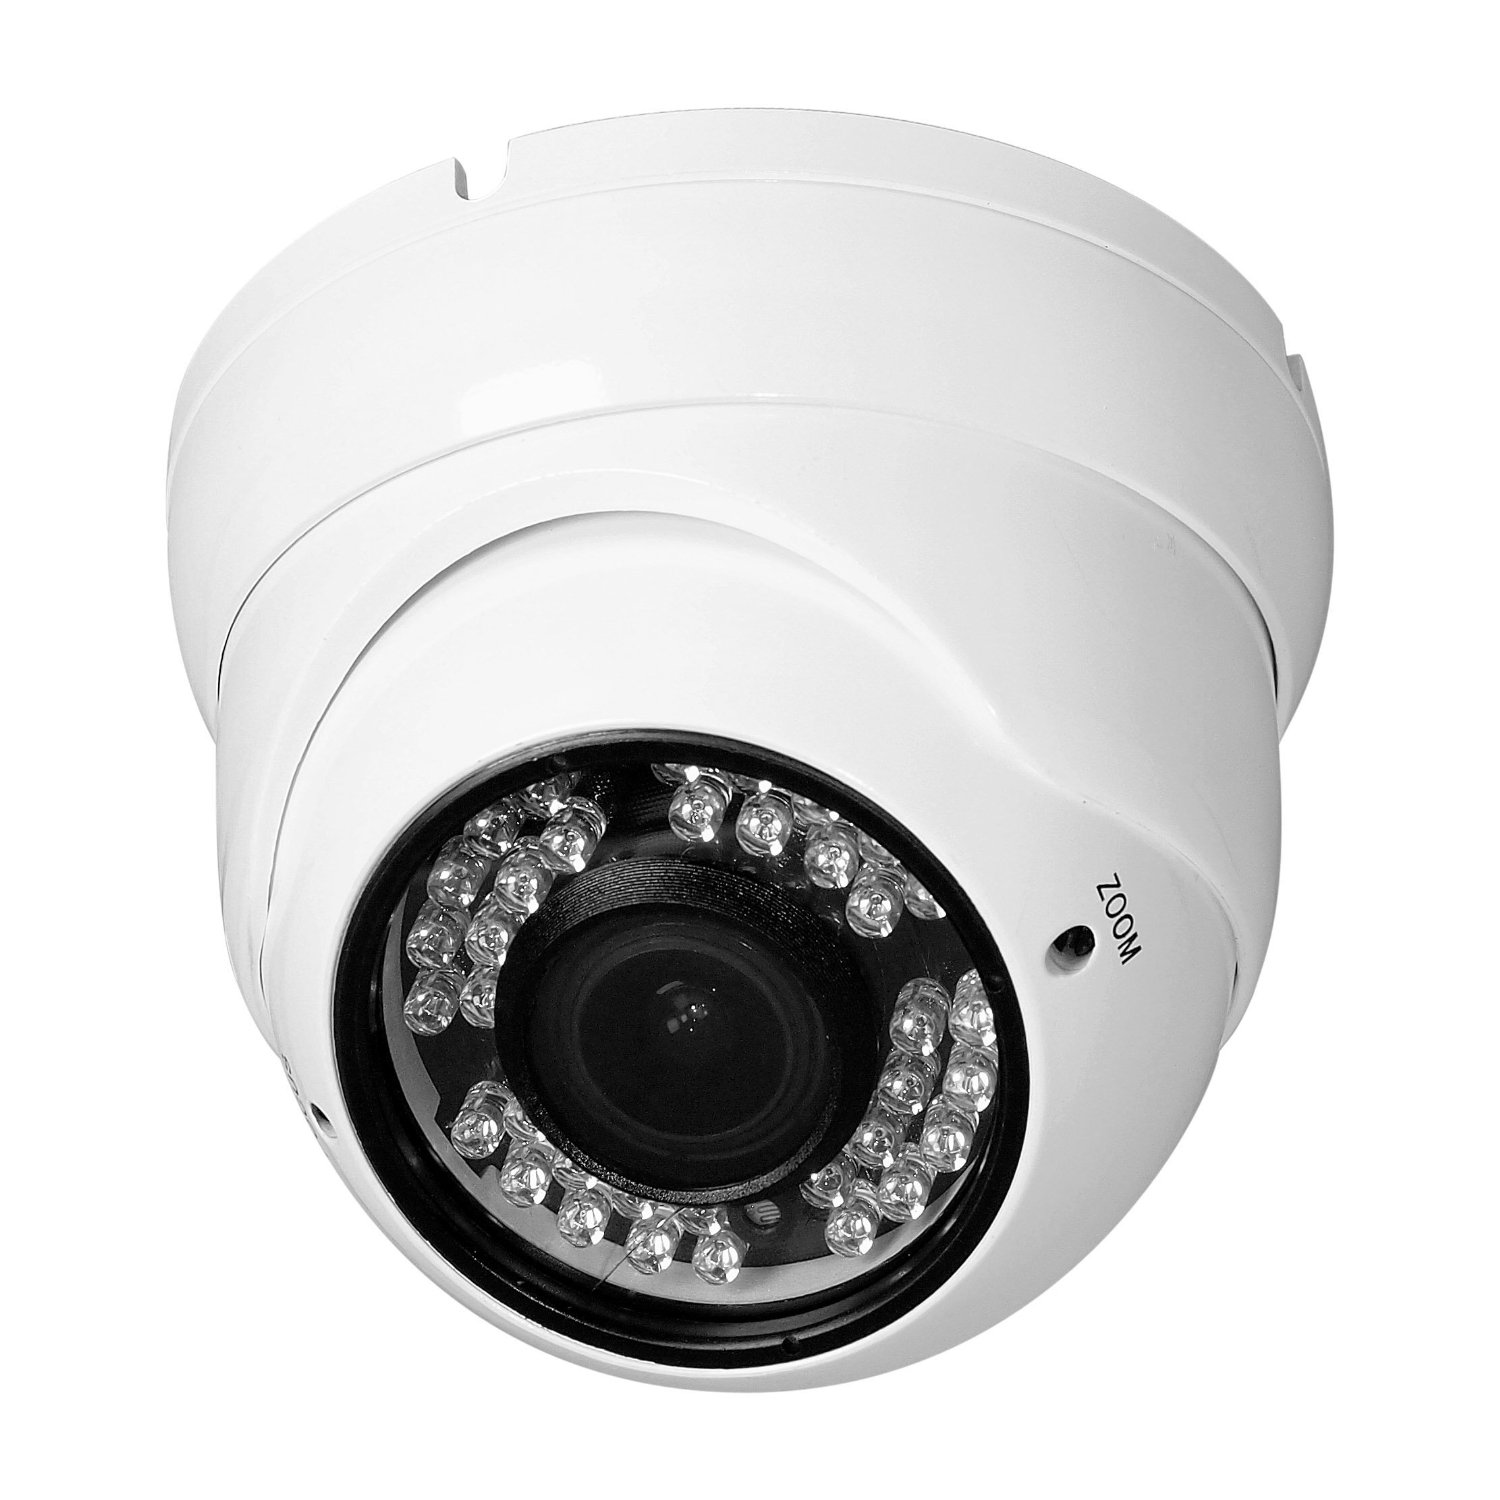 R-Tech Night Vision Video Security